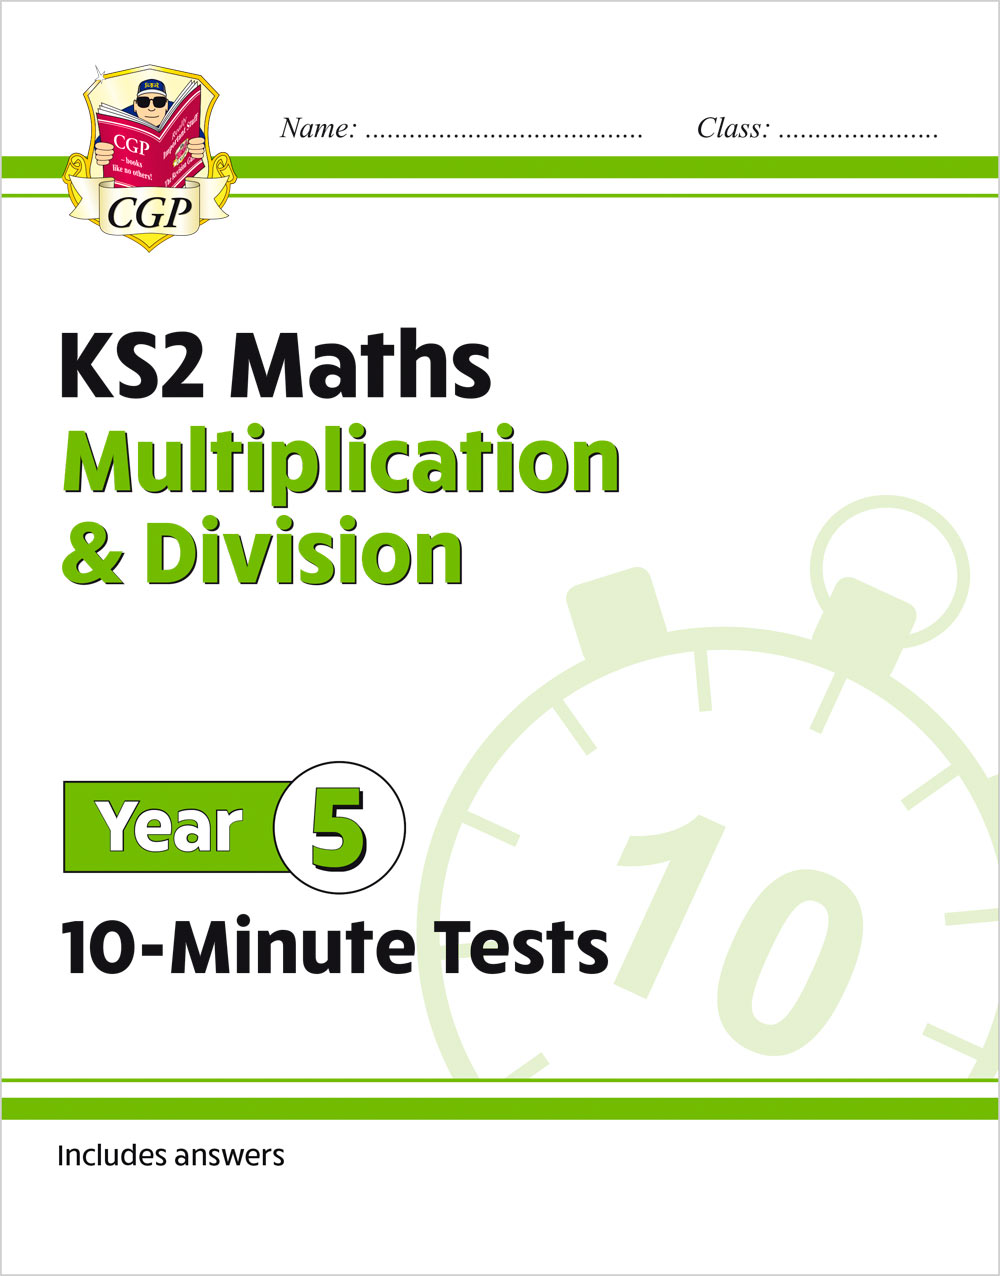 M5MDXP21 - New KS2 Maths 10-Minute Tests: Multiplication & Division - Year 5